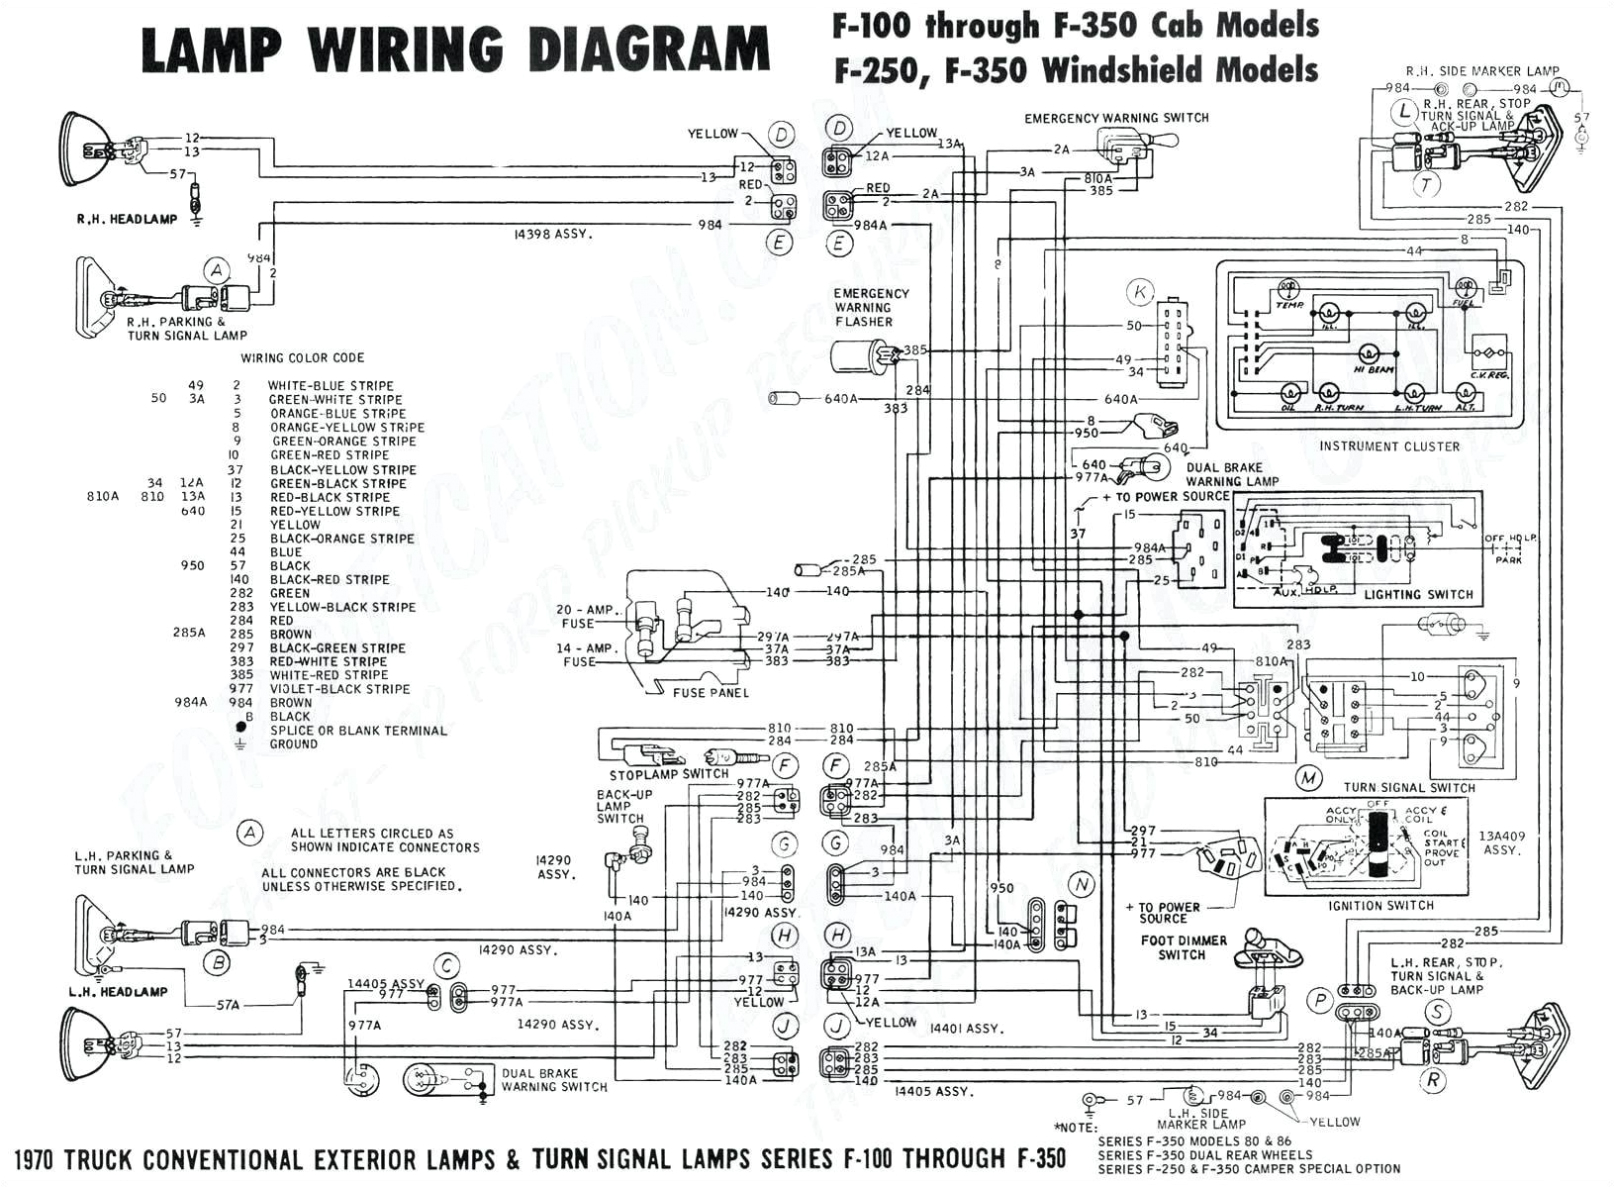 58 chevy ignition switch wiring wiring diagram load1958 chevy ignition wiring wiring diagram today 1982 jeep